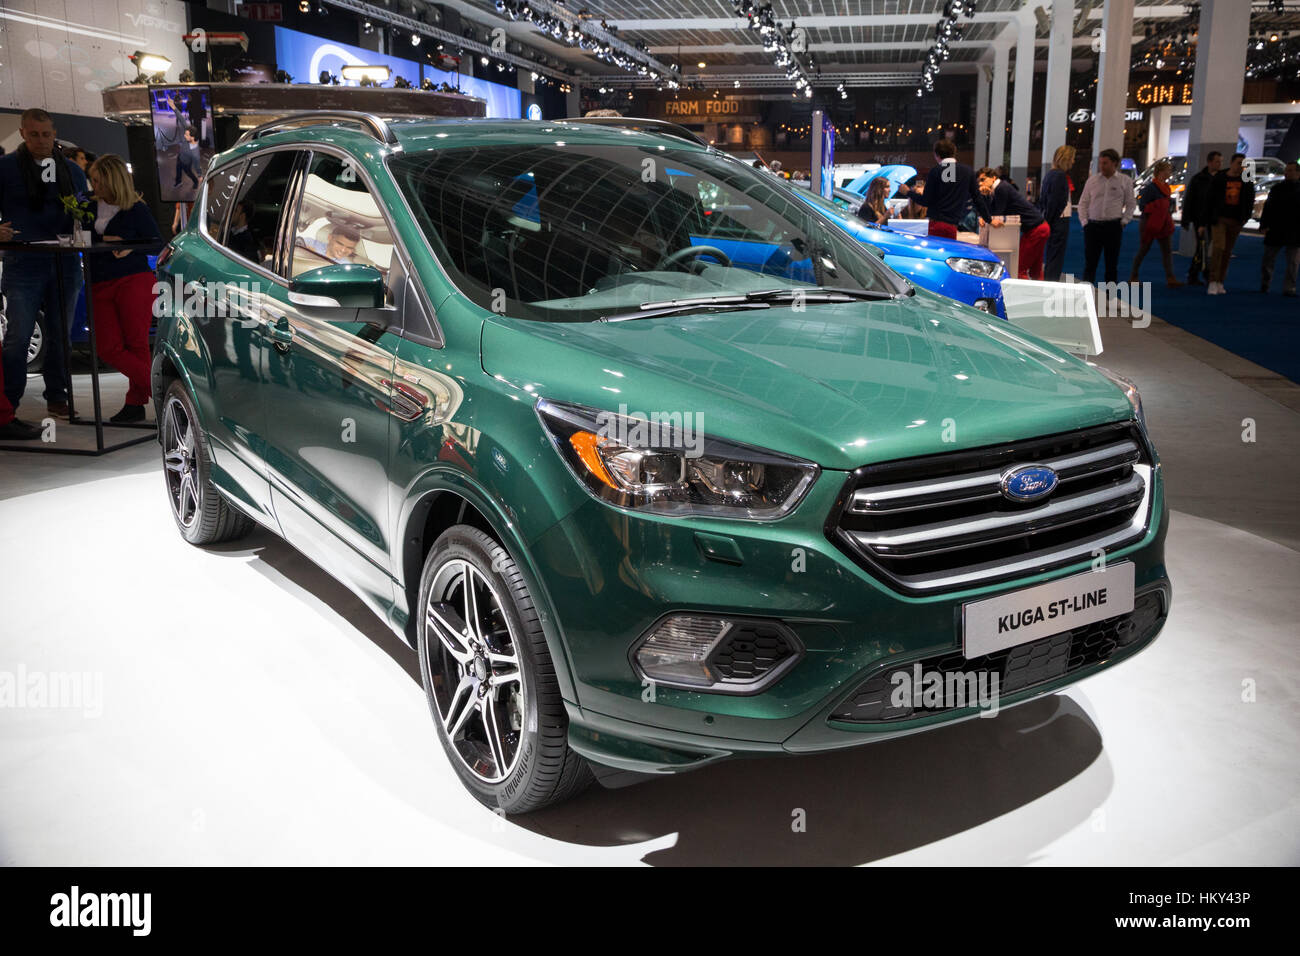 brussels jan 19 2017 new 2017 ford kuga st line presented at the stock photo royalty free. Black Bedroom Furniture Sets. Home Design Ideas